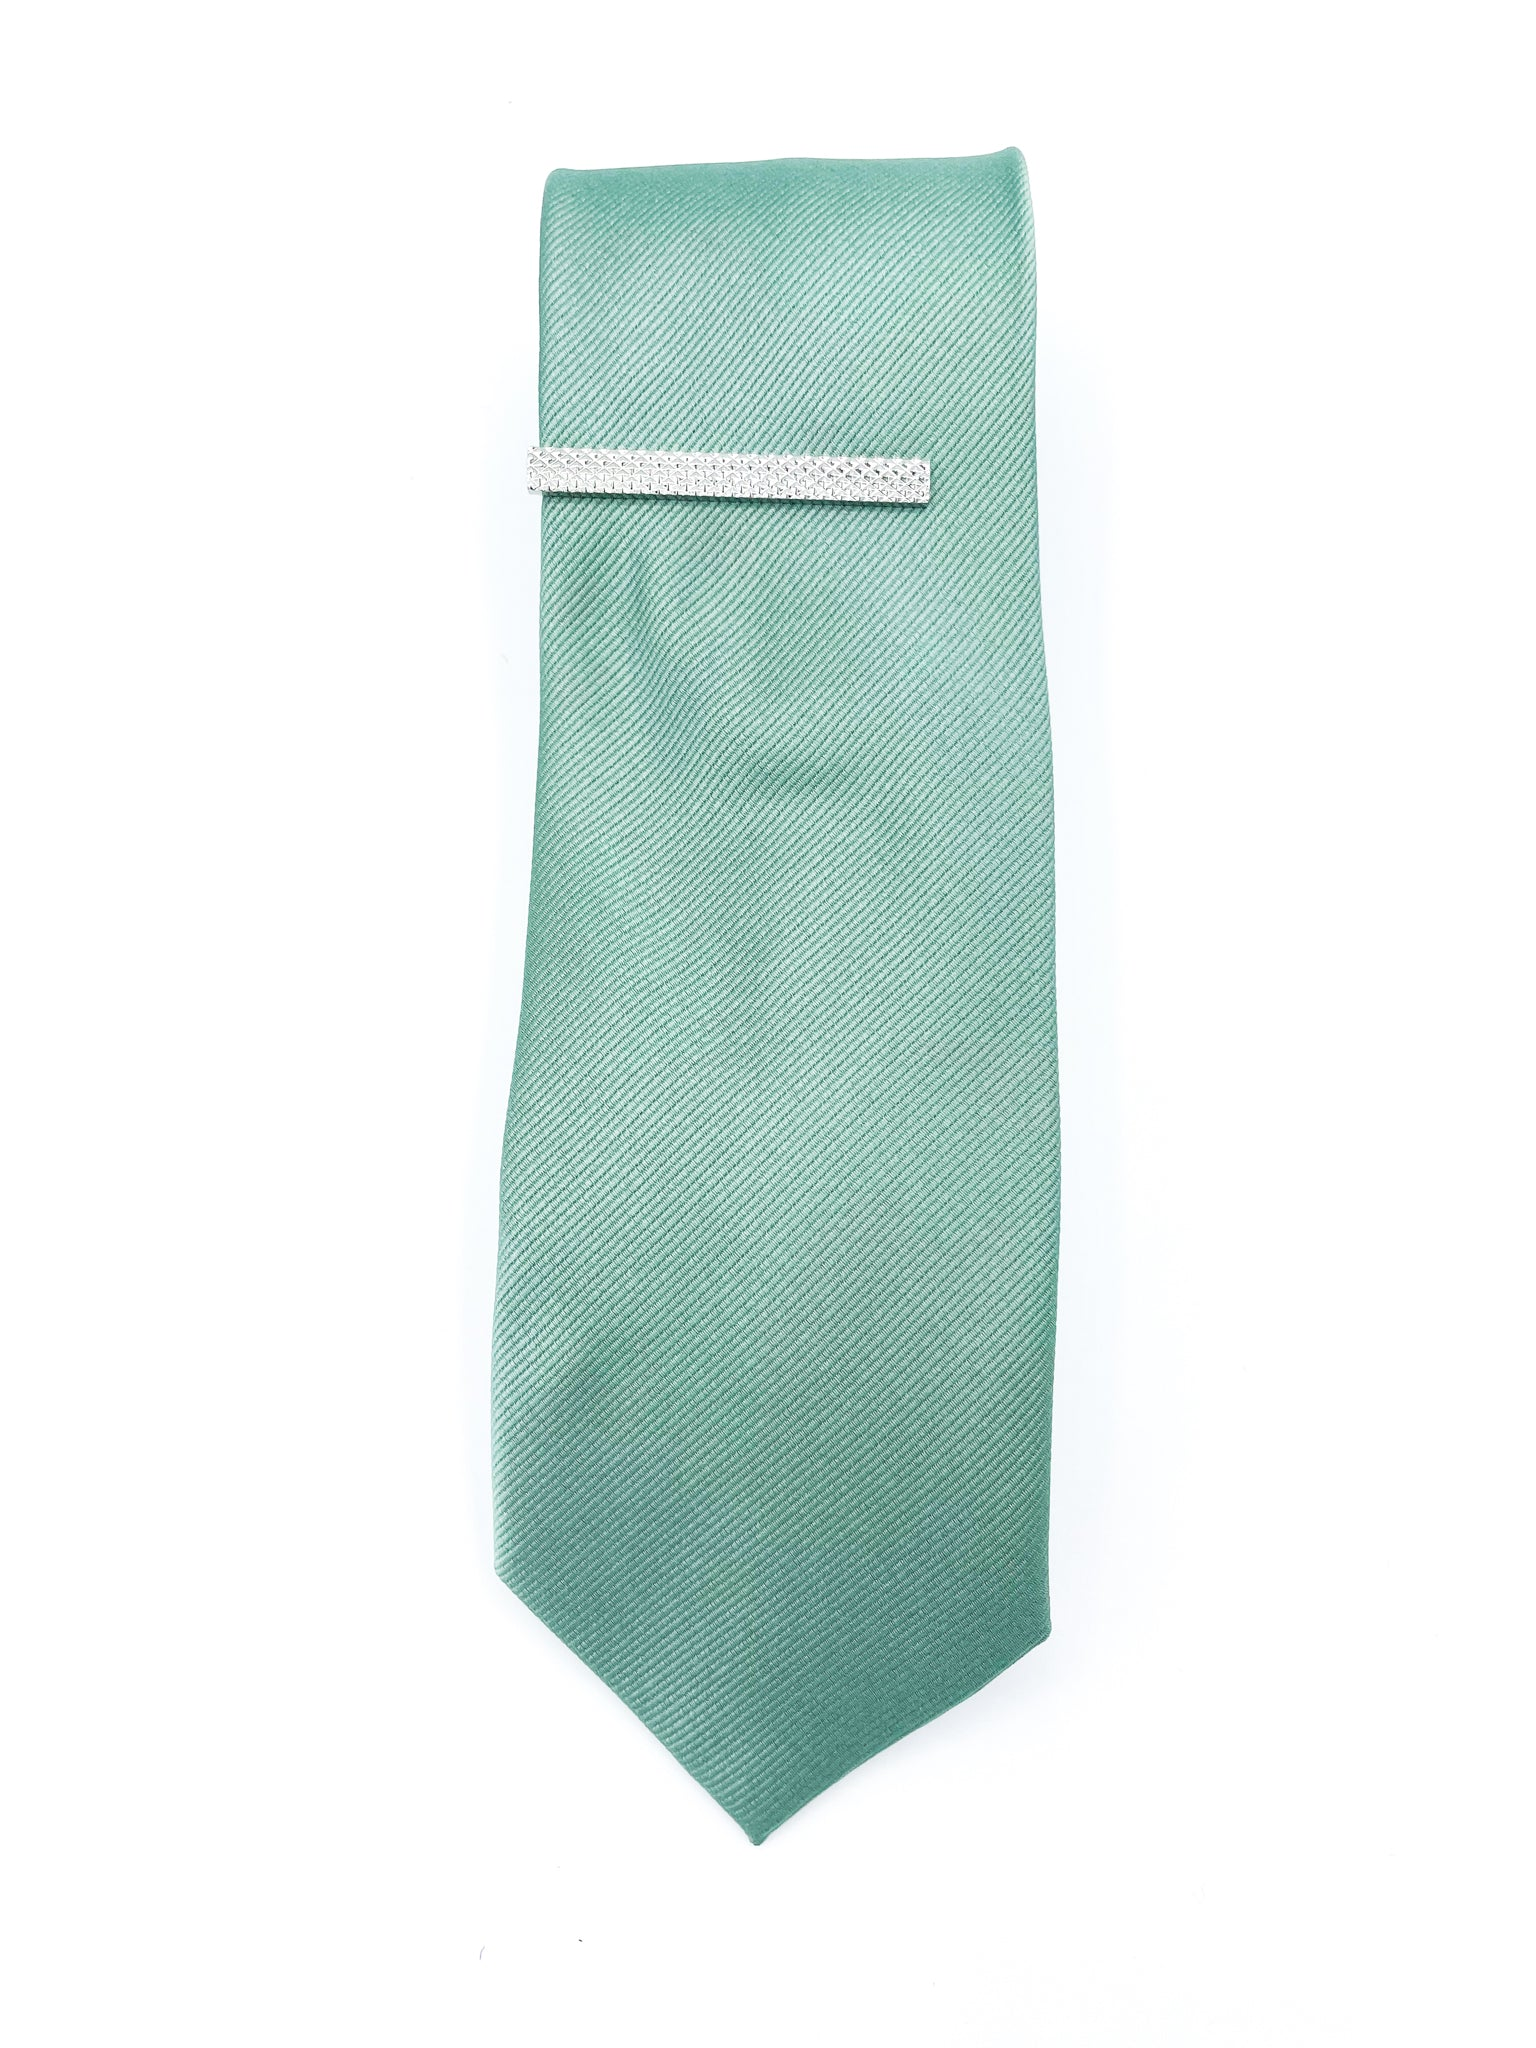 Mint tie with Floral Pocket Square, Lapel Pin, Tie Bar and Fabric Bag